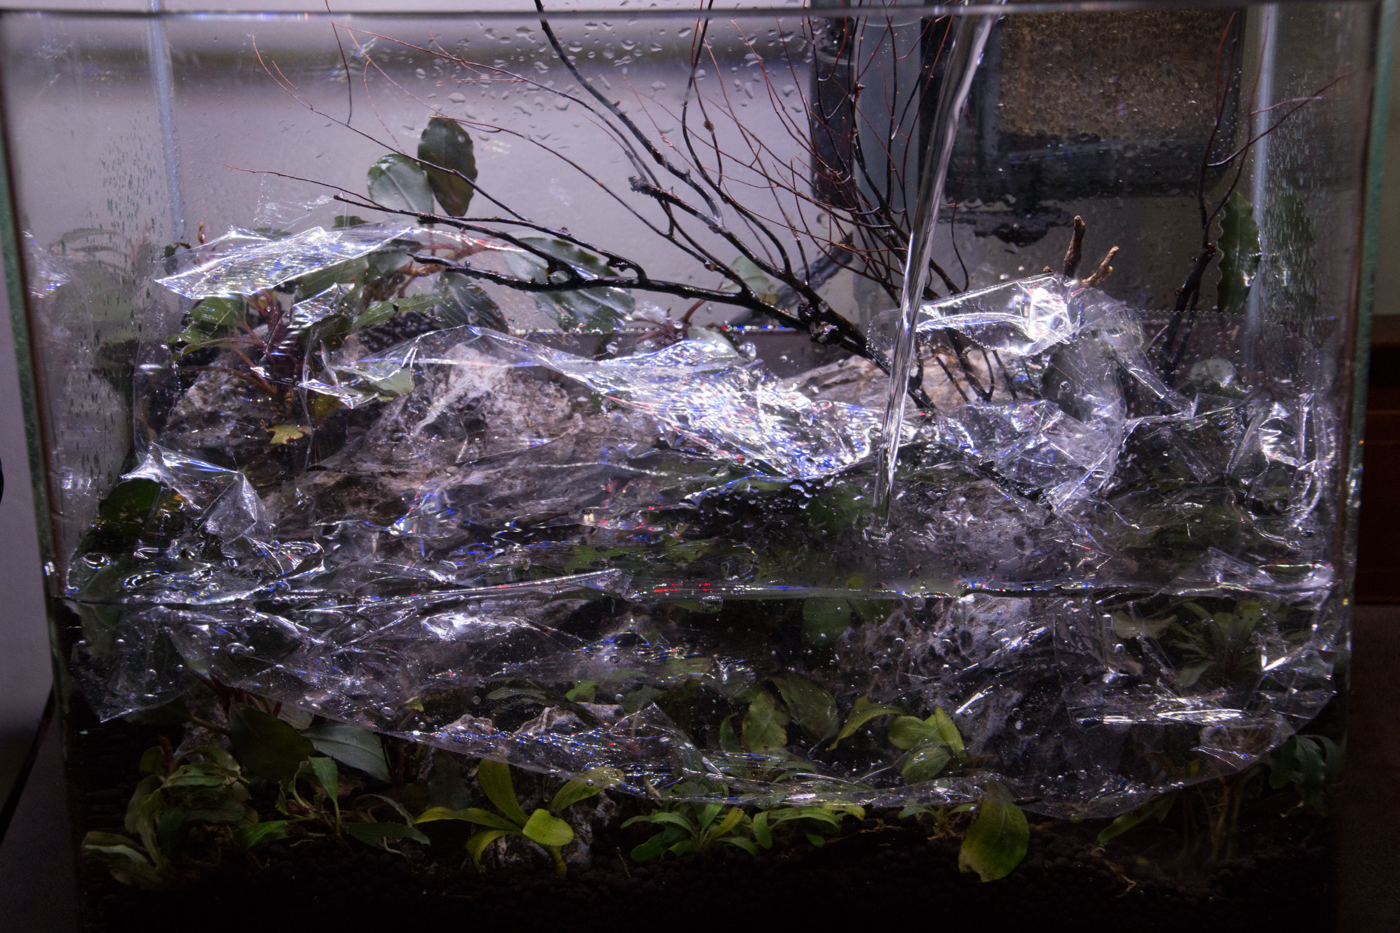 As the water gets deeper, the plastic wrap will float up. No problem! Just keep pouring water directly onto the wrap.